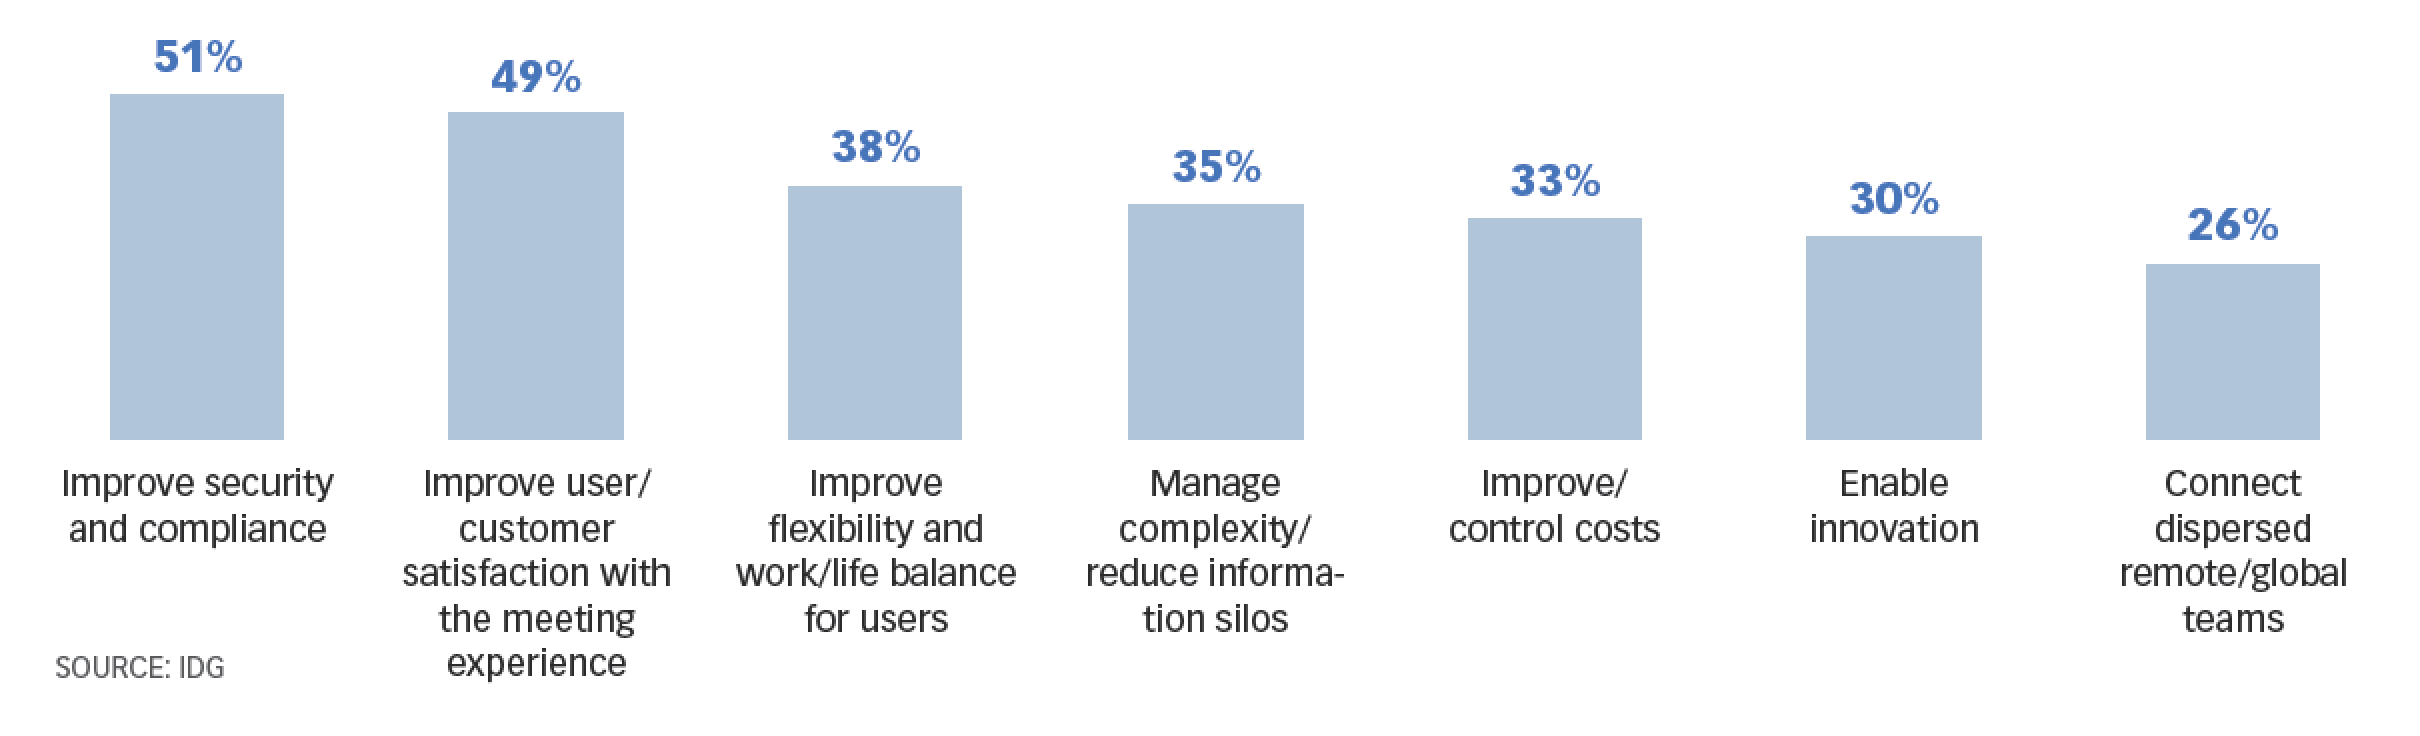 Top goals of IT executives planning to use collaboration technology